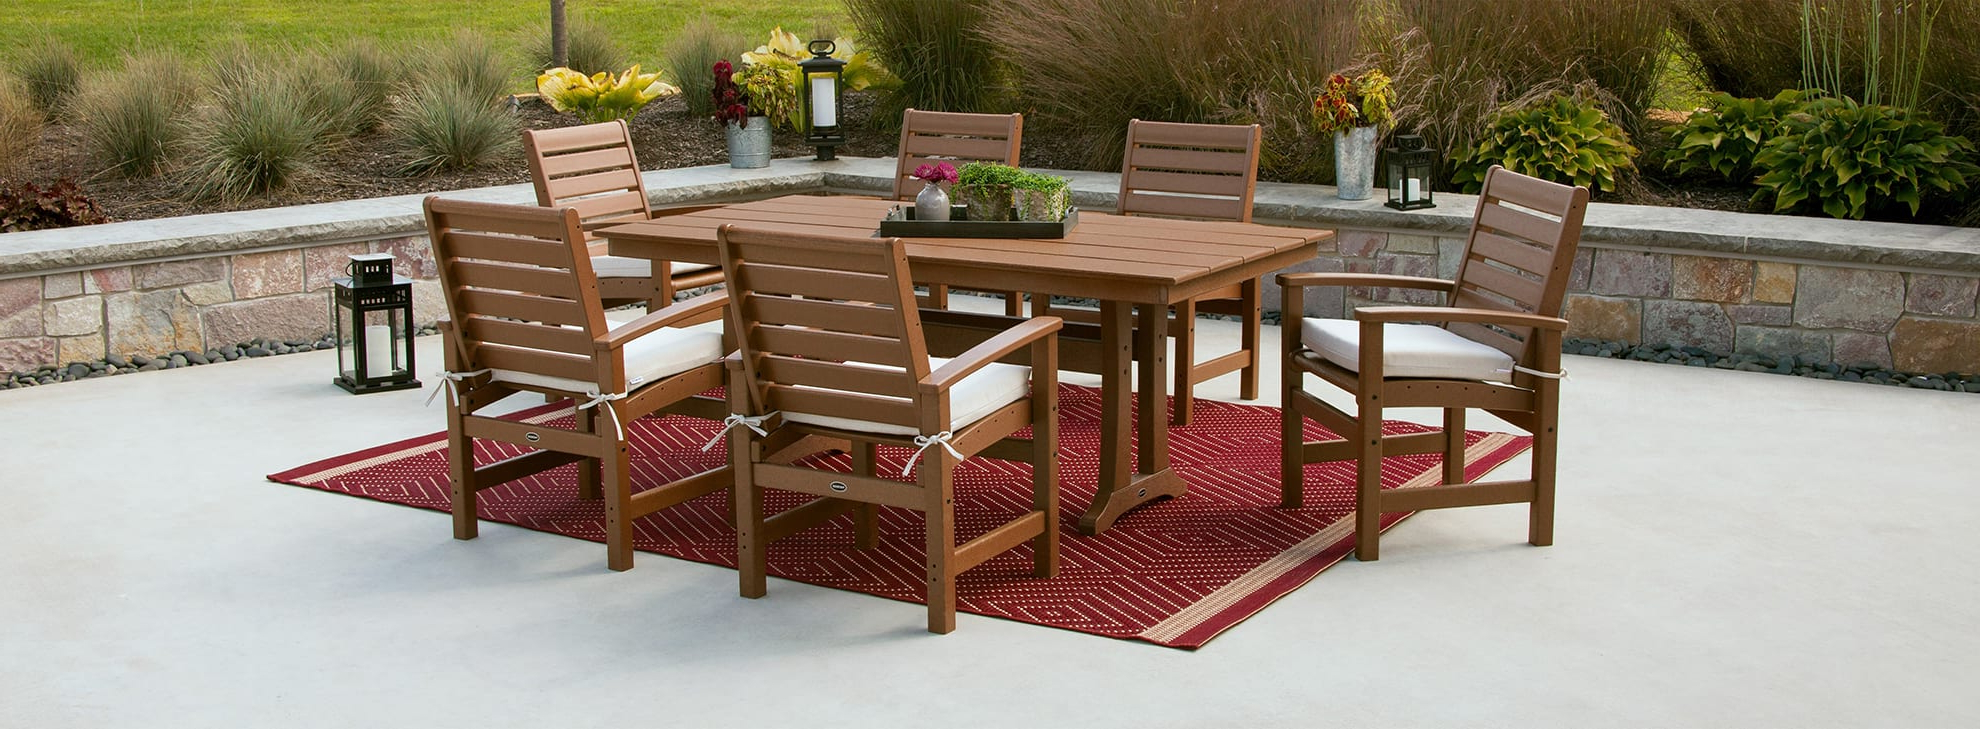 Most Popular Patio Square Bar Dining Tables Throughout Outdoor & Patio Dining Furniture (View 18 of 25)